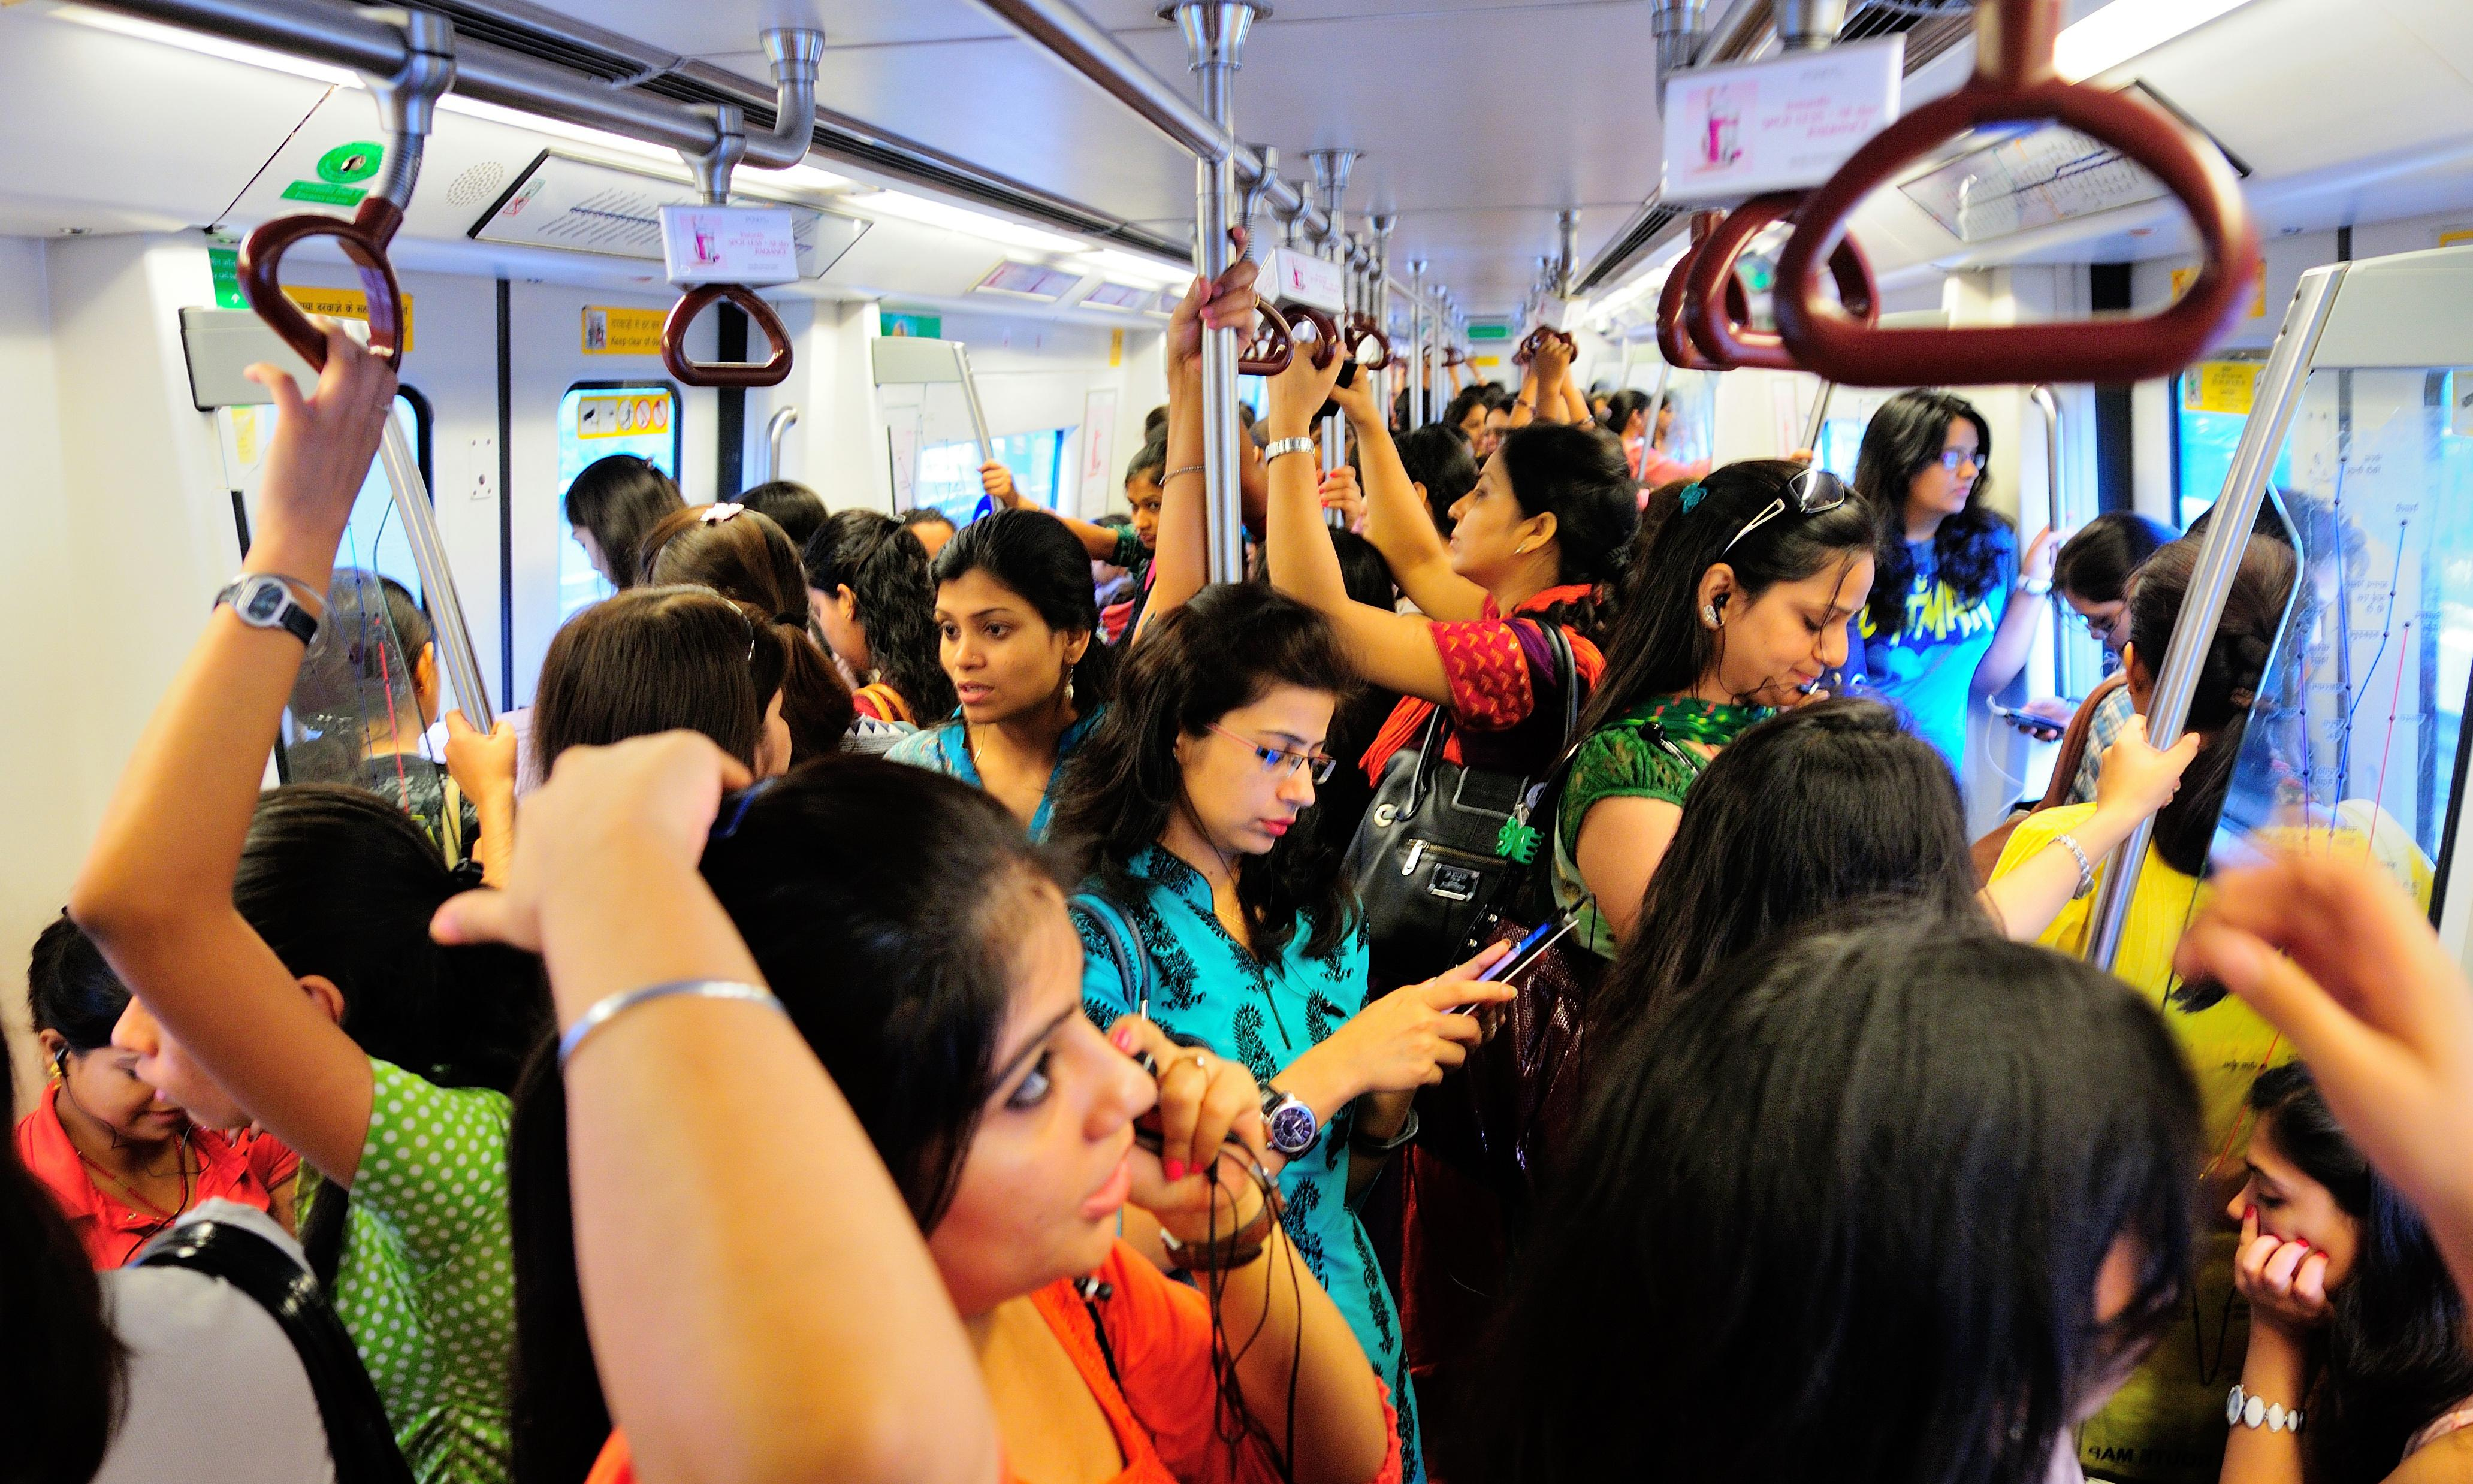 'It's stifling at home': why free metro travel offers a lifeline for Delhi's women